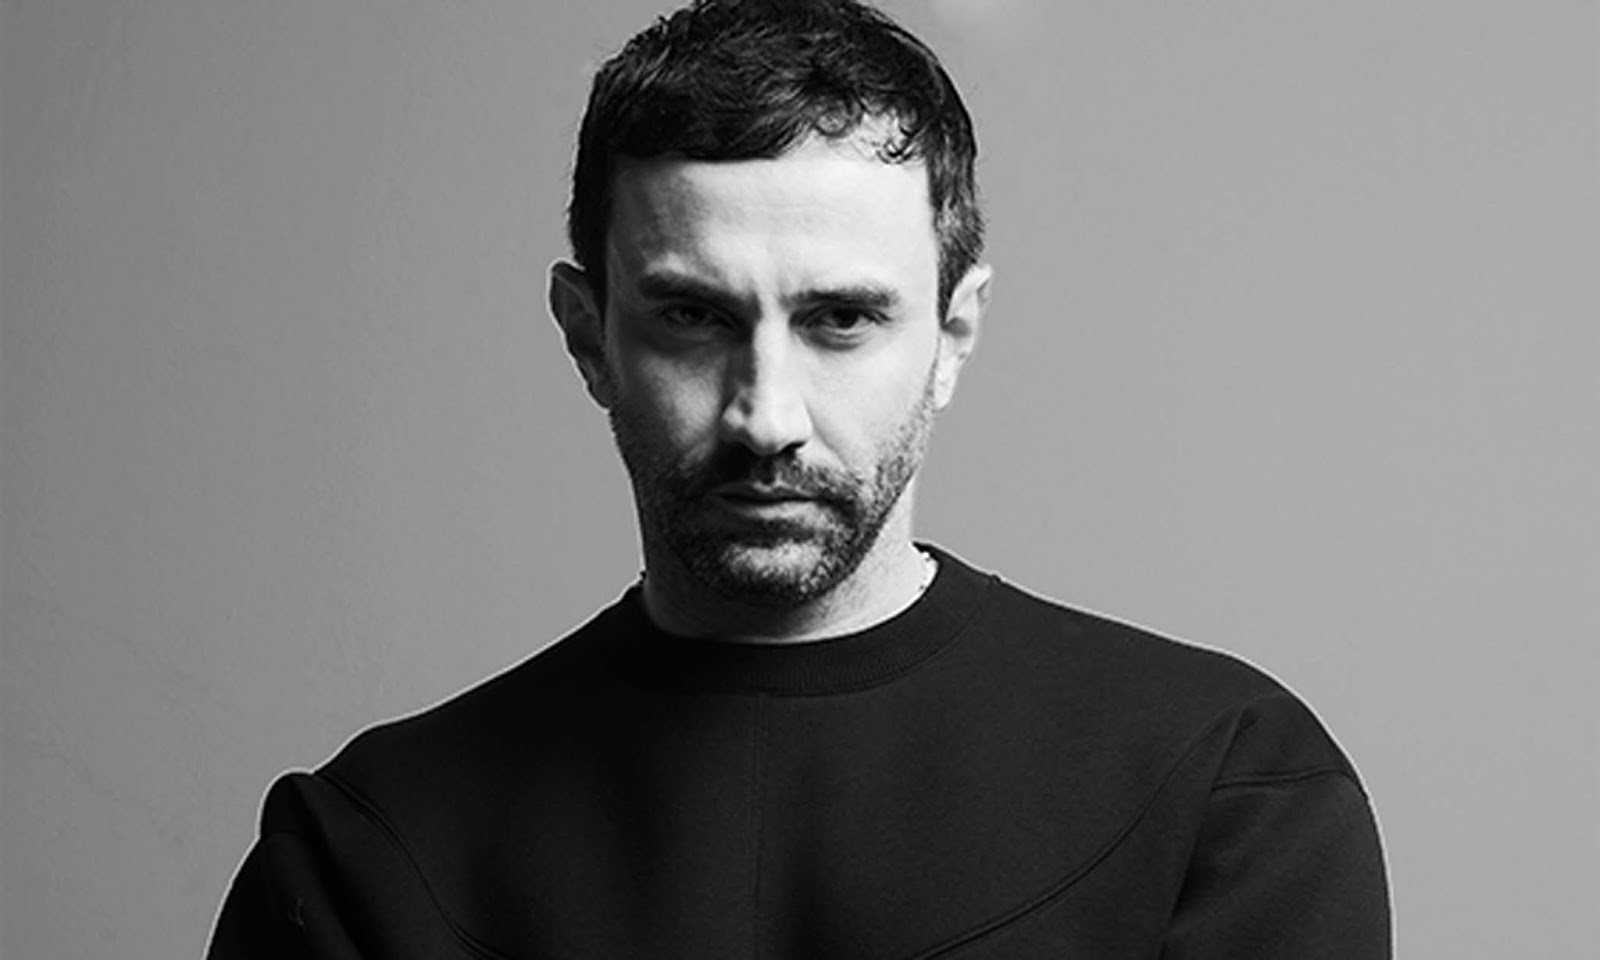 Eniwhere Fashion - News on Fashion - Riccardo Tisci